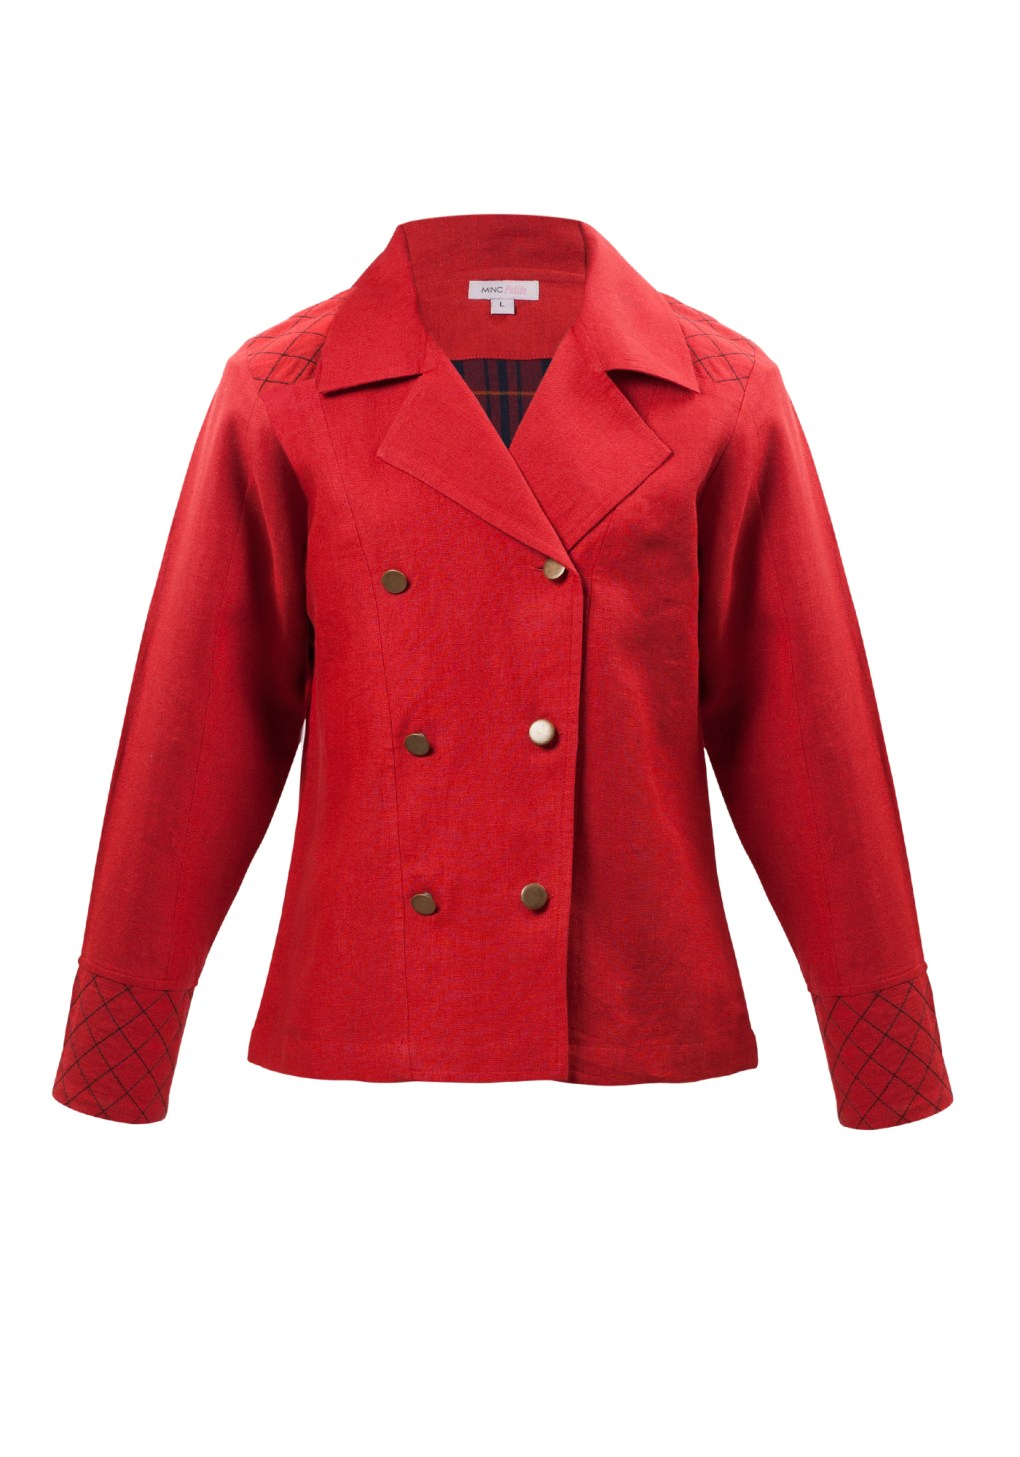 Little Toy Soldier Jacket In Red Linen